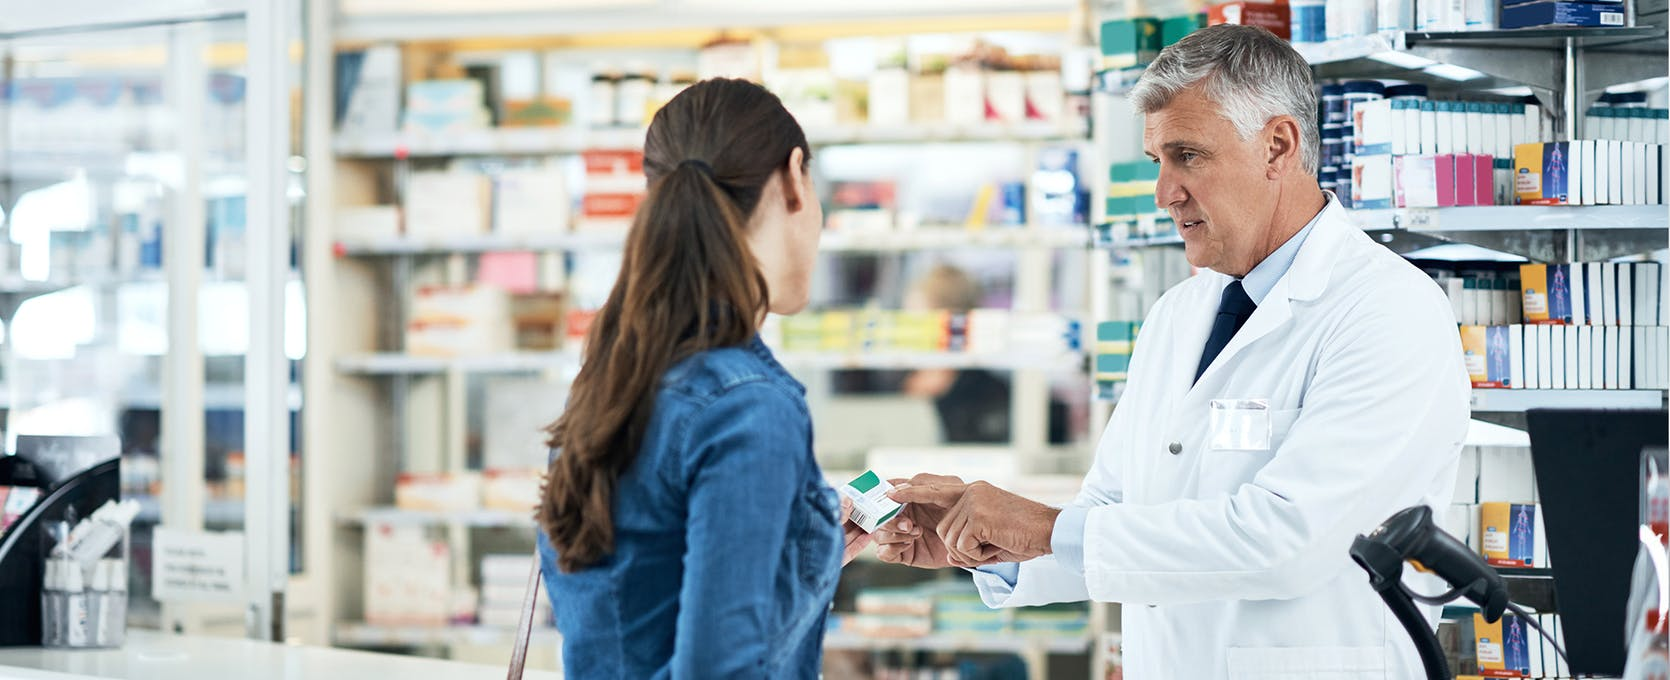 Pharmacist speaking with a customer at a pharmacy